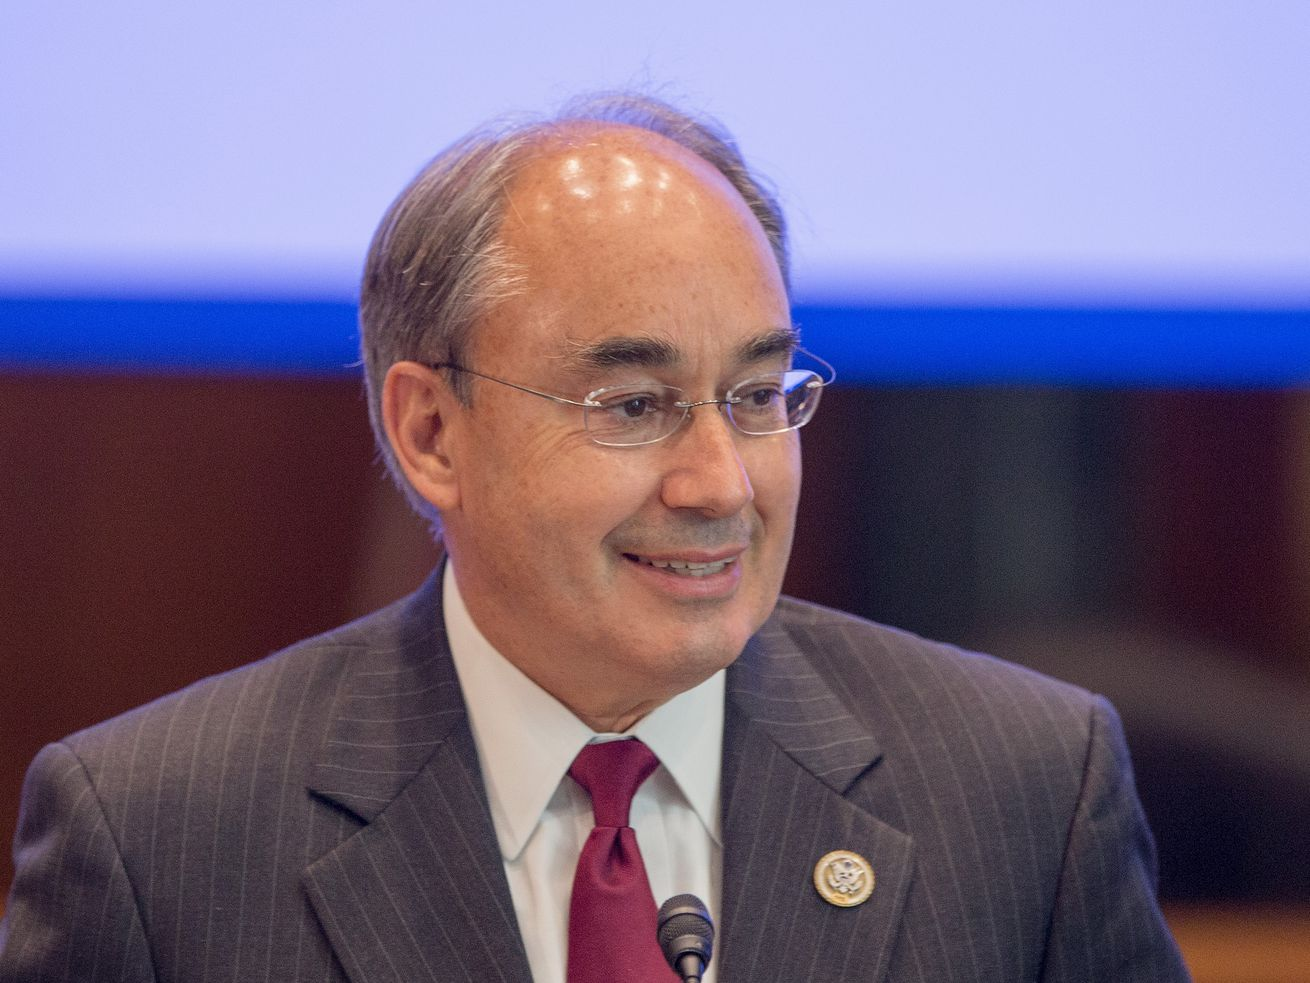 House of Representative Bruce Poliquin of Maine speaks on Capitol Hill in September.